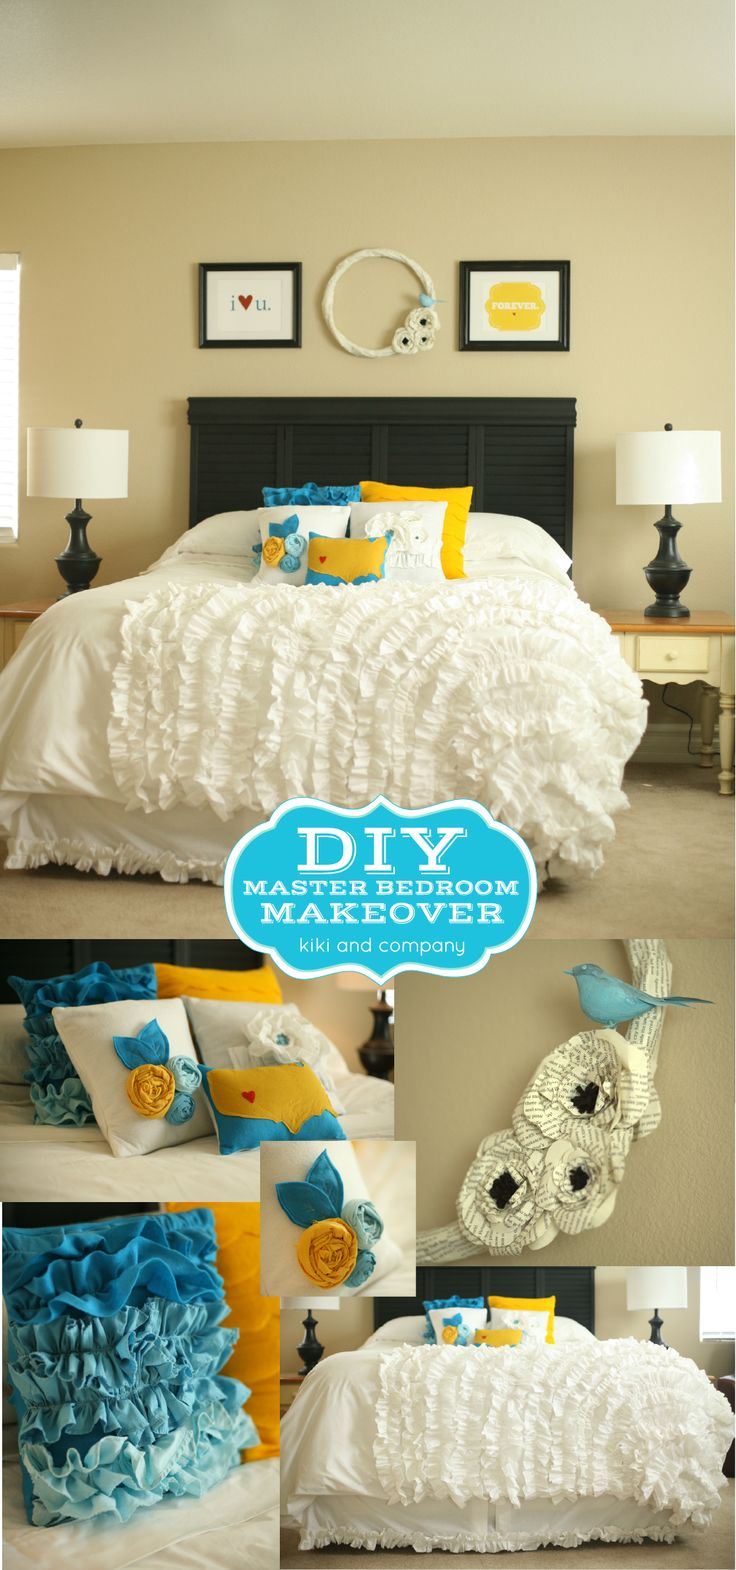 1000 Images About Bedroom Redo Ideas On Pinterest Diy Headboards Soccer And Guest Rooms